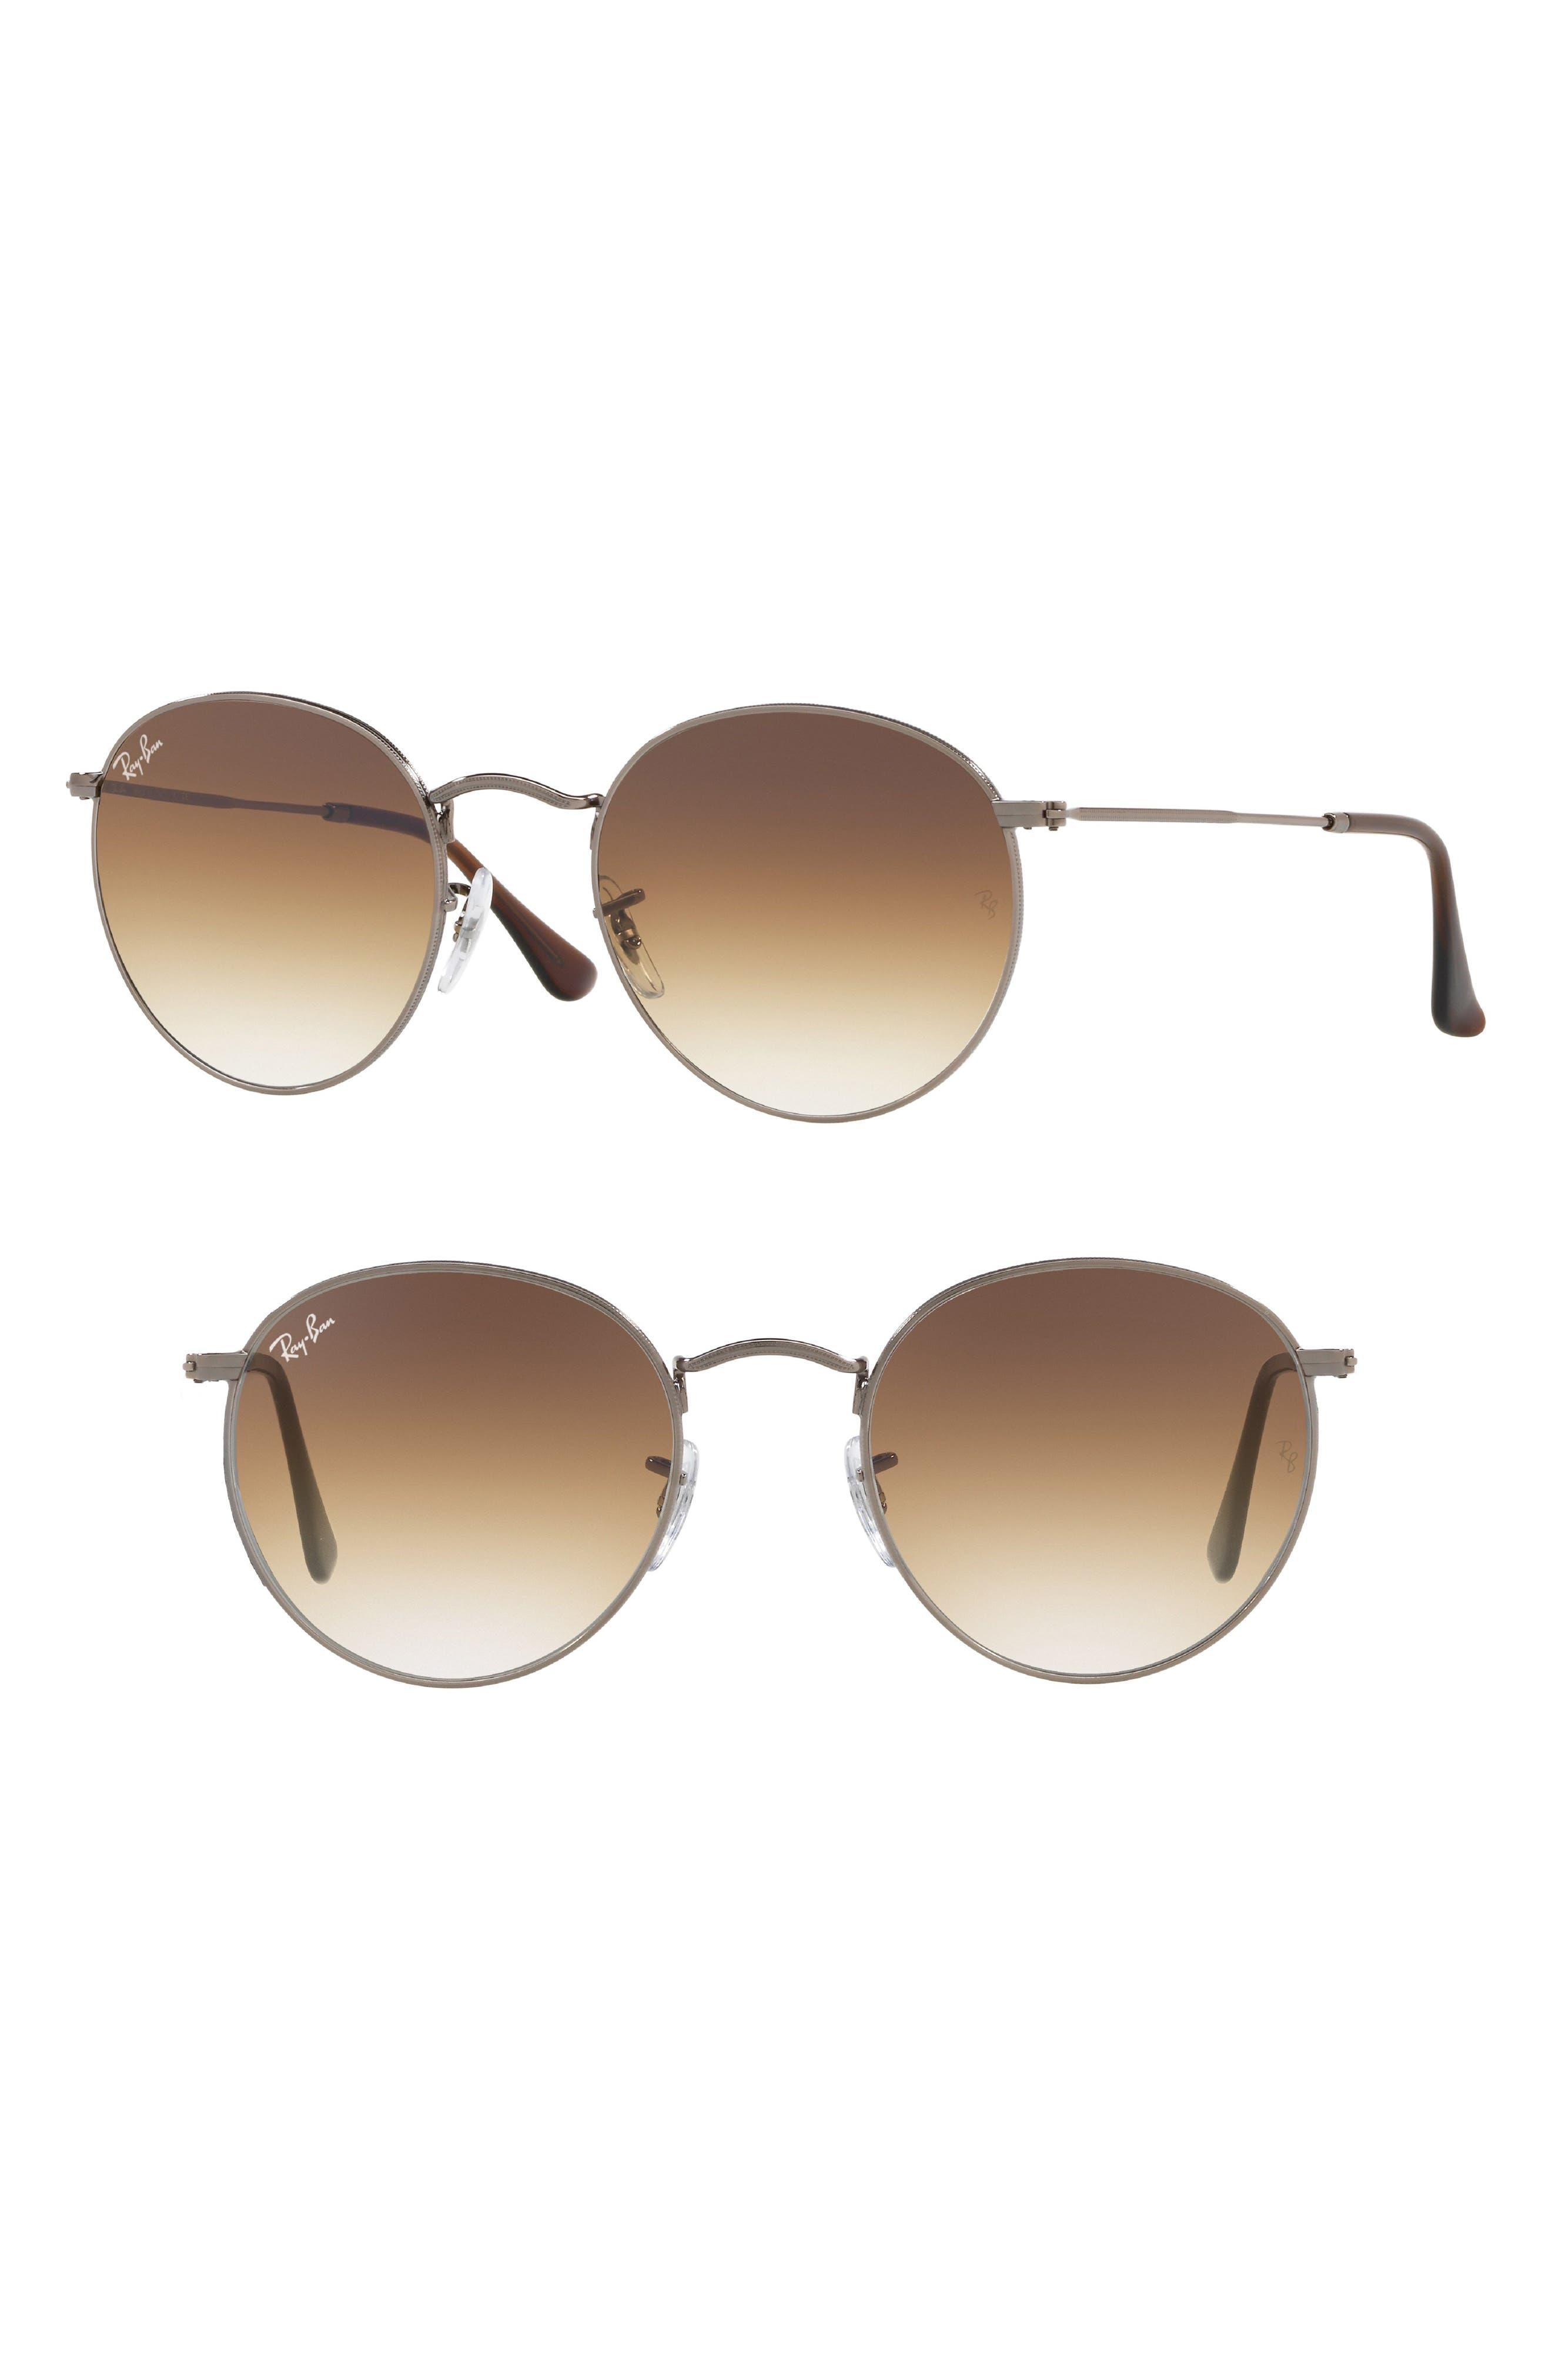 53mm Round Retro Sunglasses,                         Main,                         color, 062